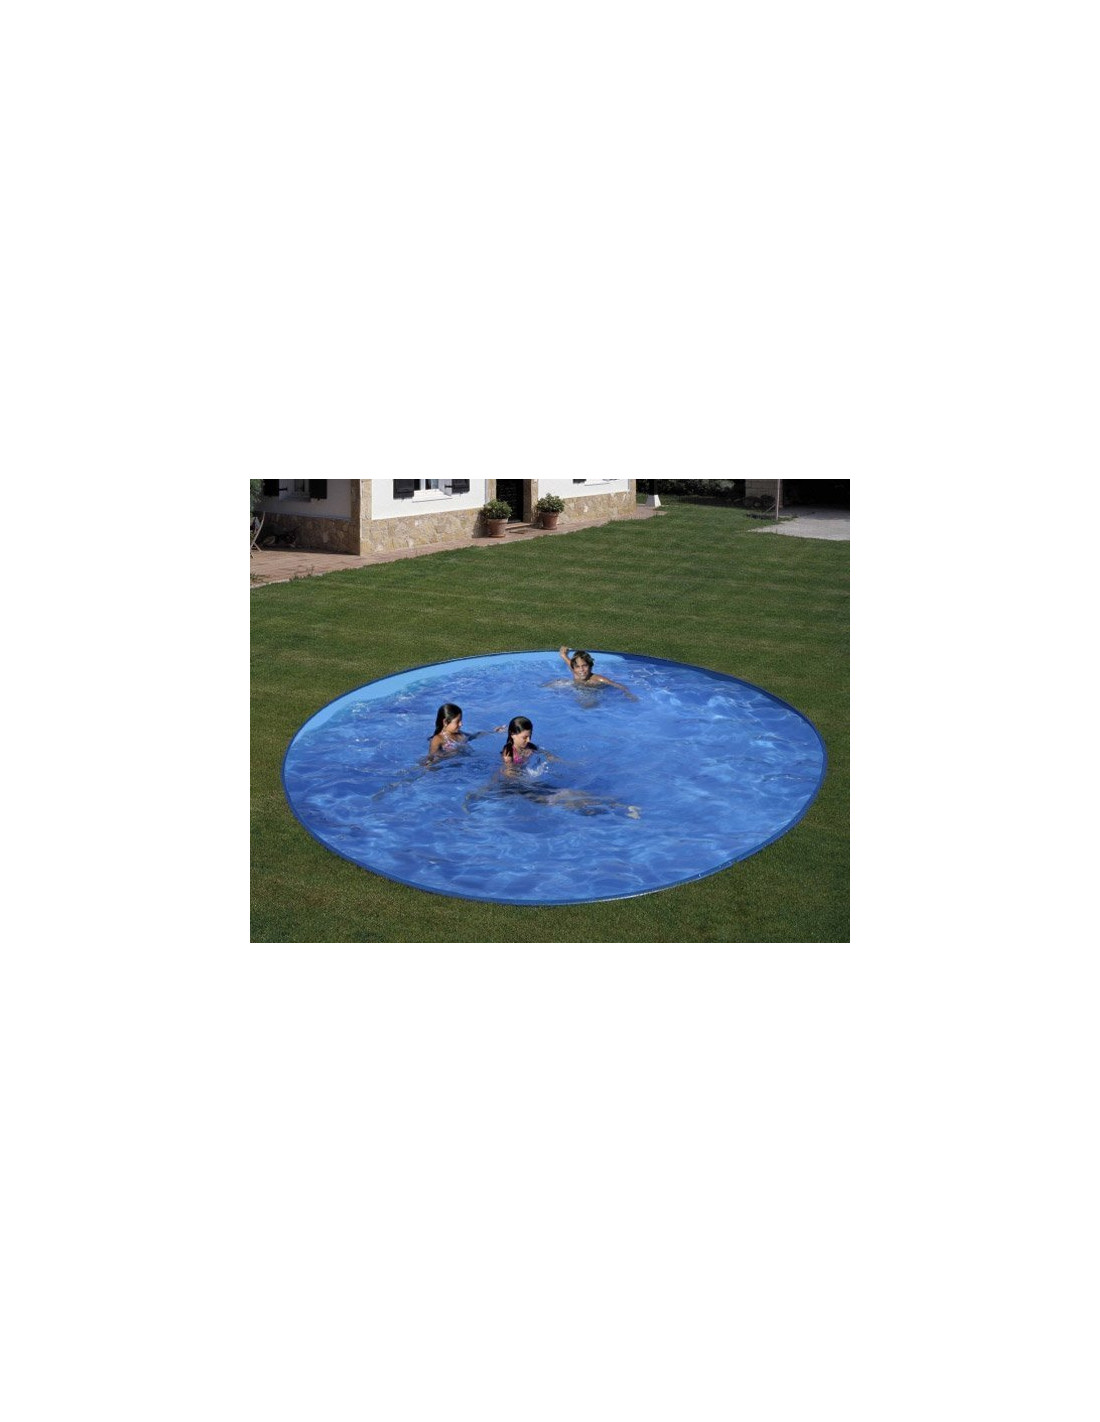 Piscine enterr e en kit star pool 4 20 3 50 cm x h 1 for Liner piscine 3 50 x 1 20